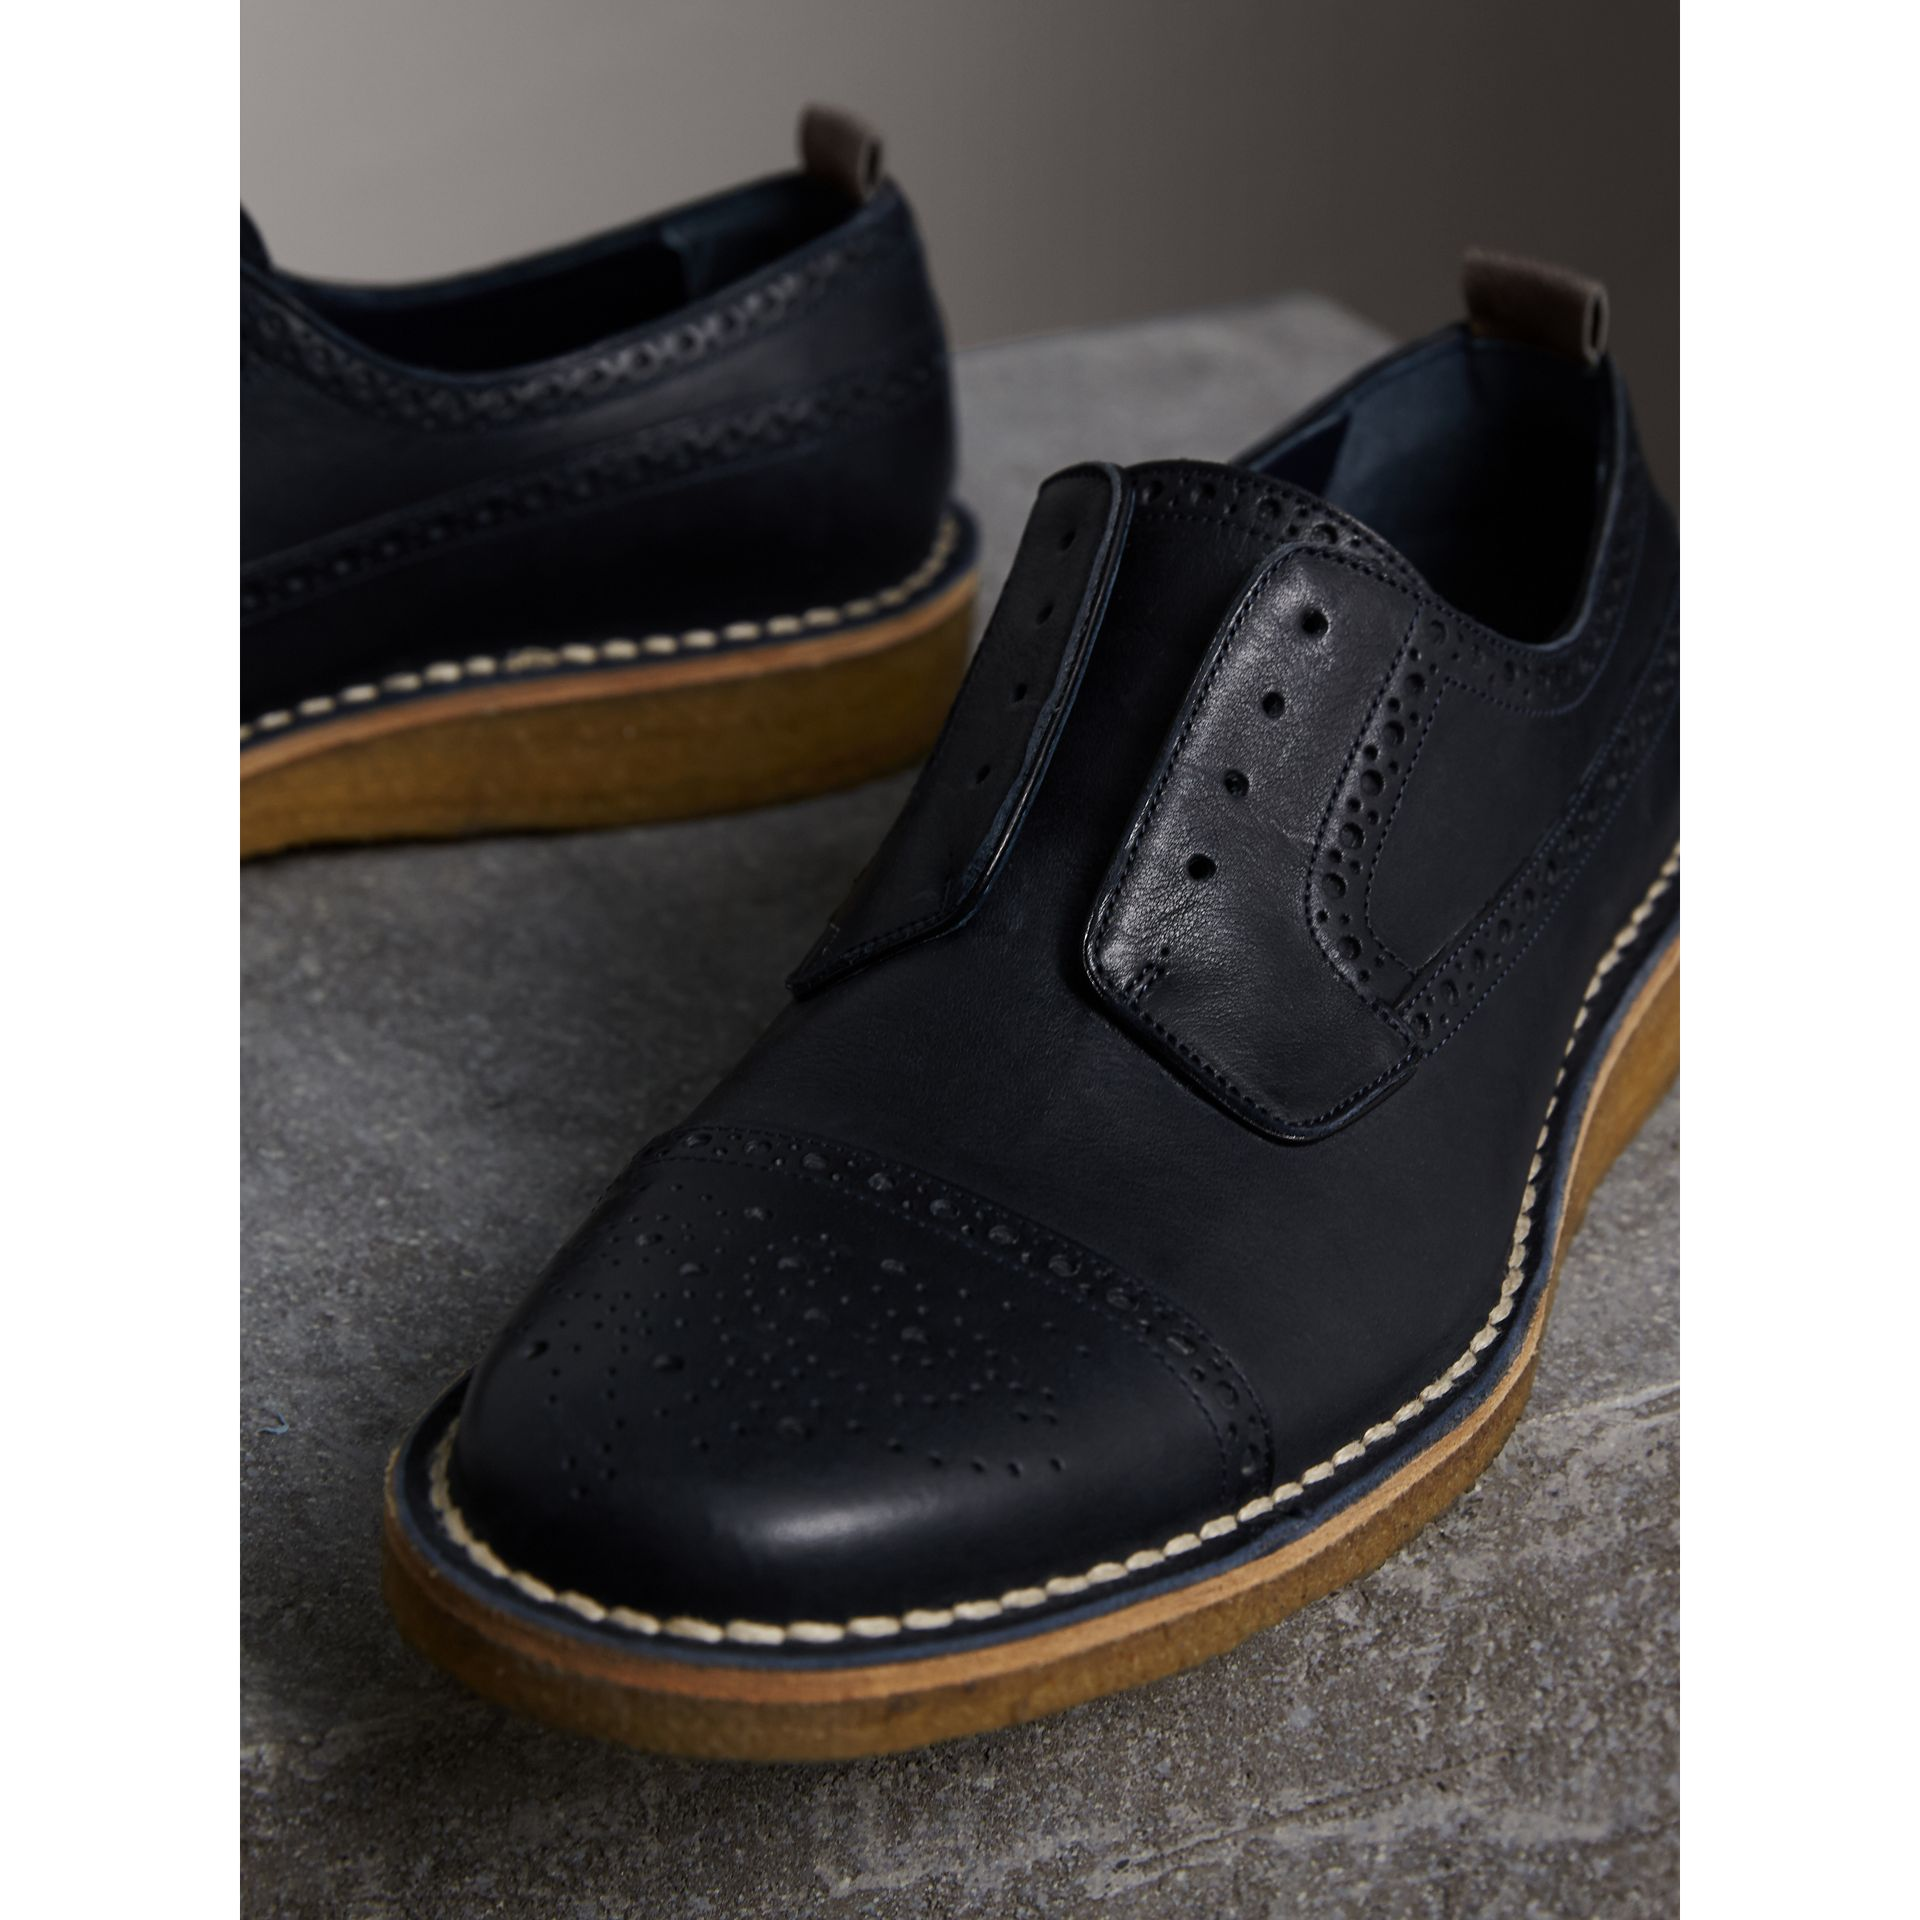 Raised Toe-cap Nappa Leather Brogues in Navy - Men | Burberry - gallery image 4